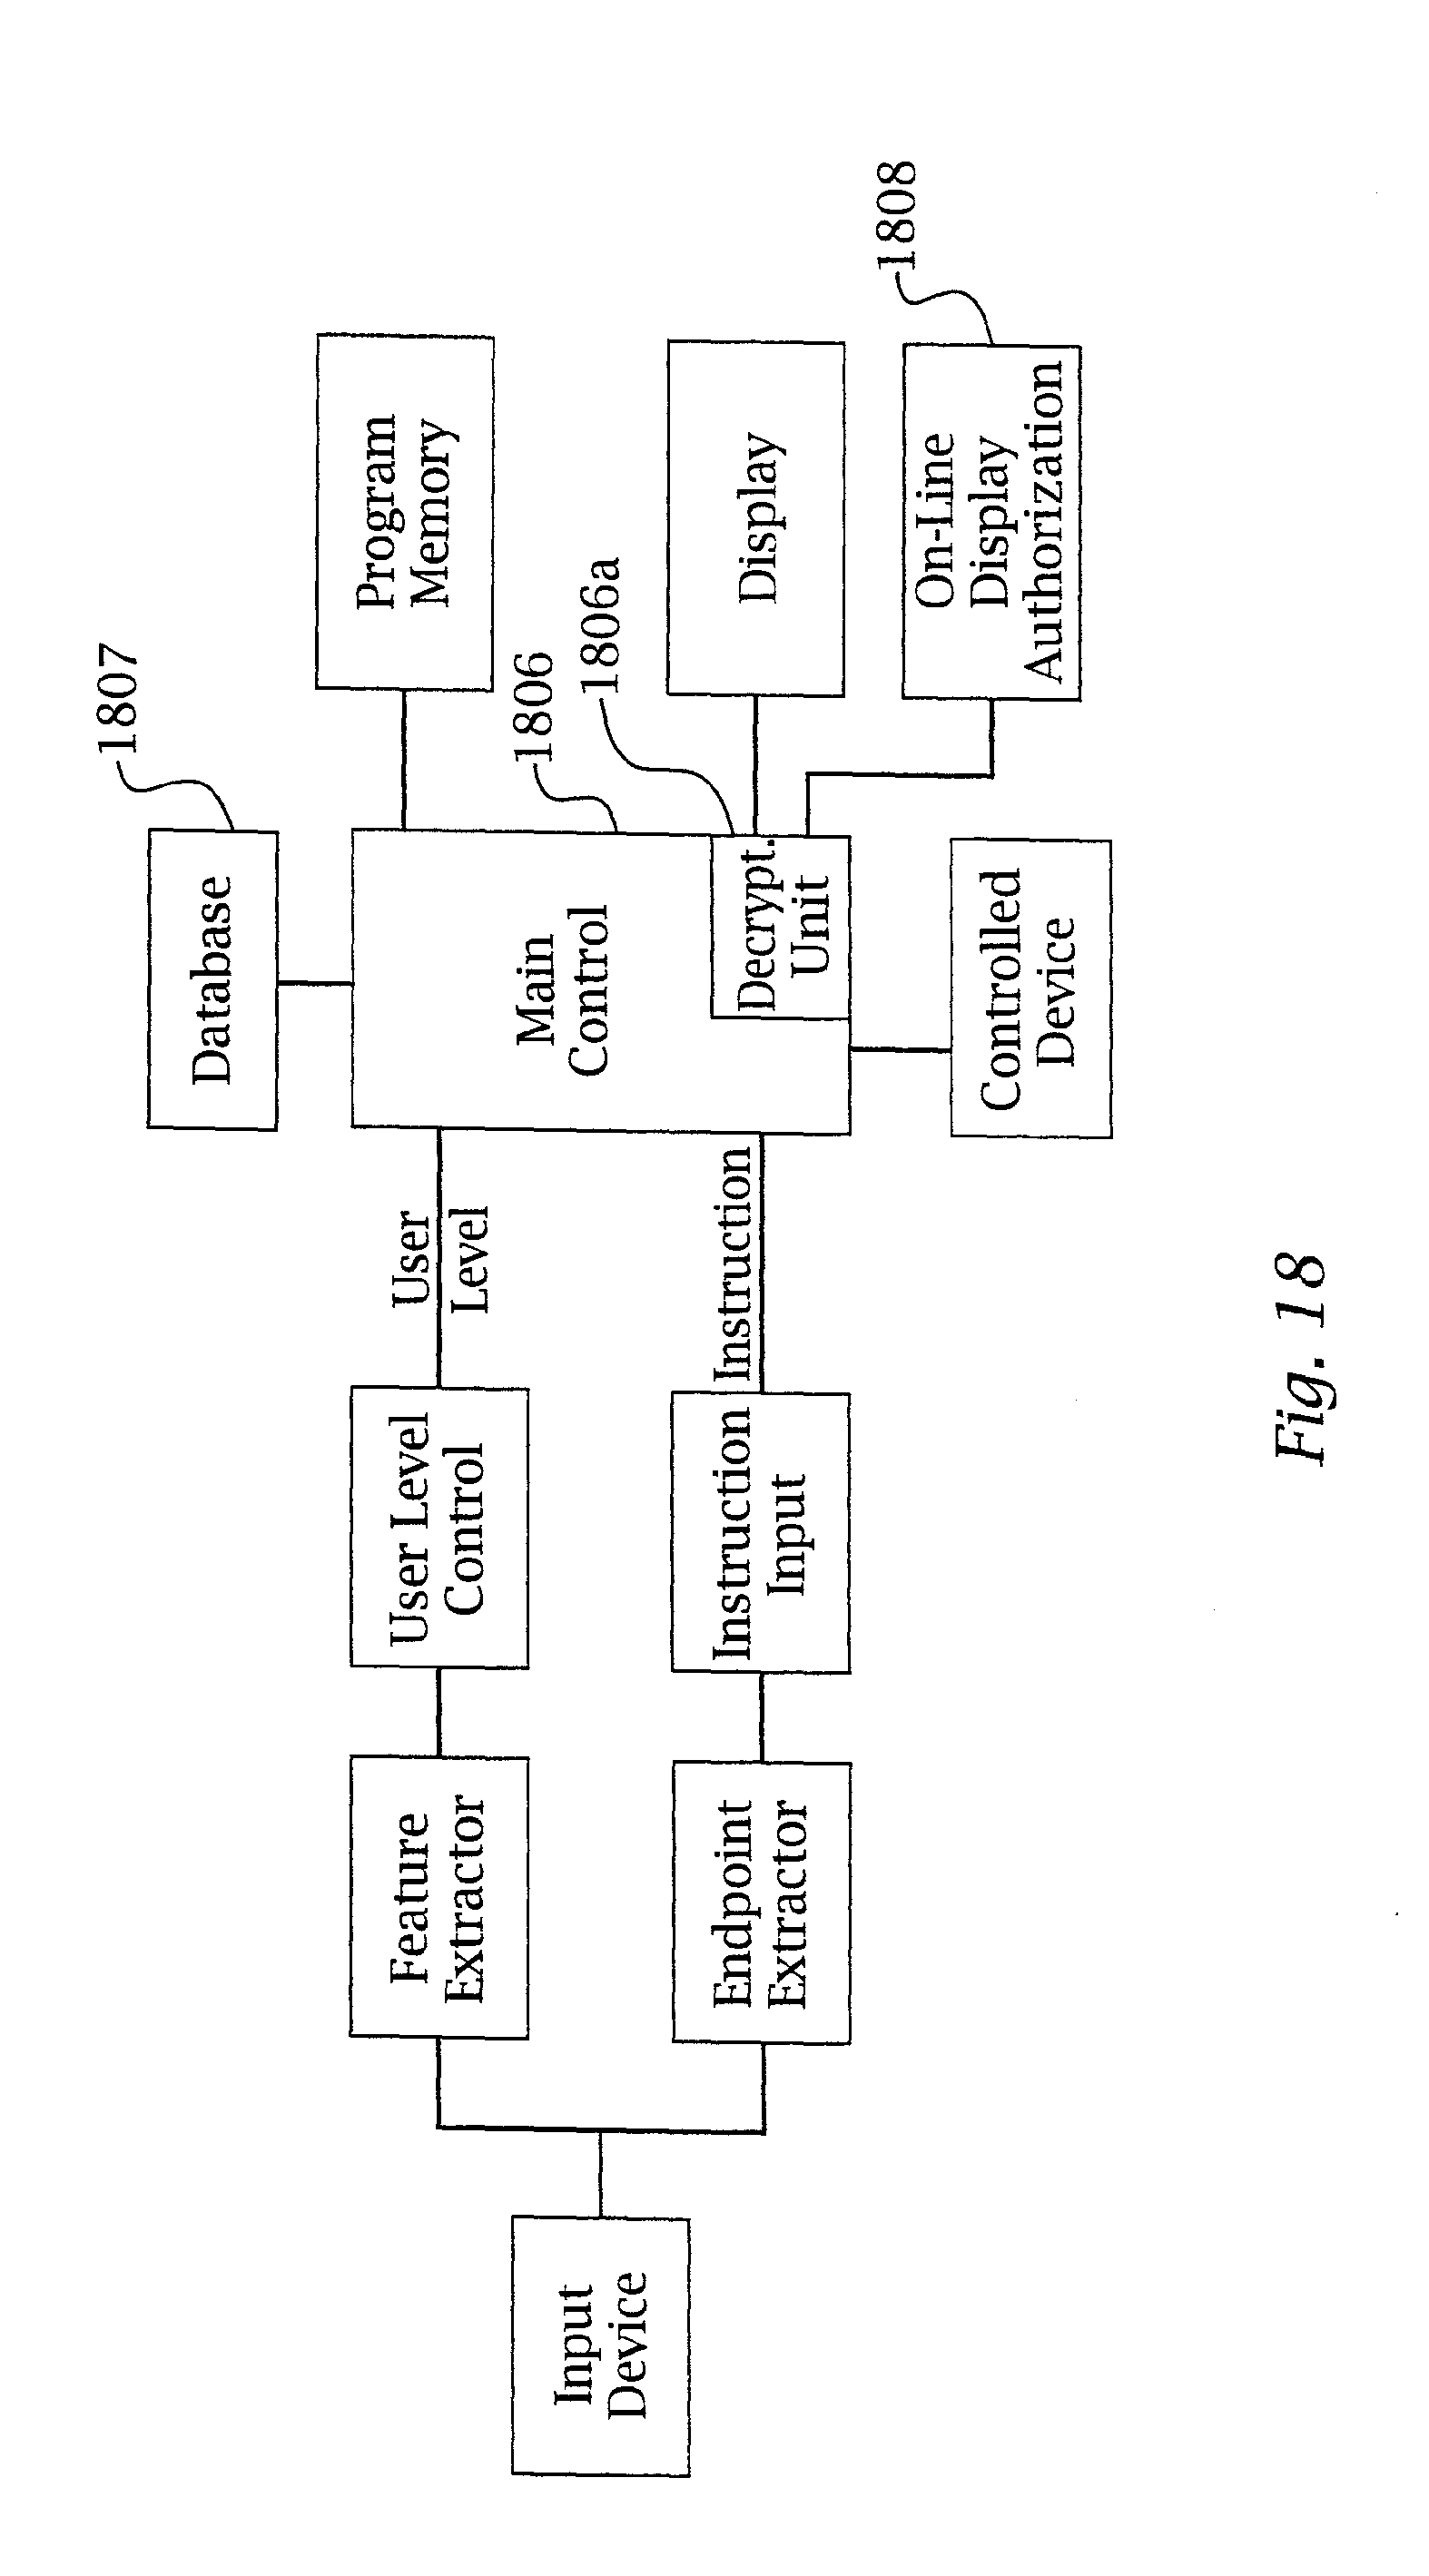 US8369967B2 - Alarm system controller and a method for